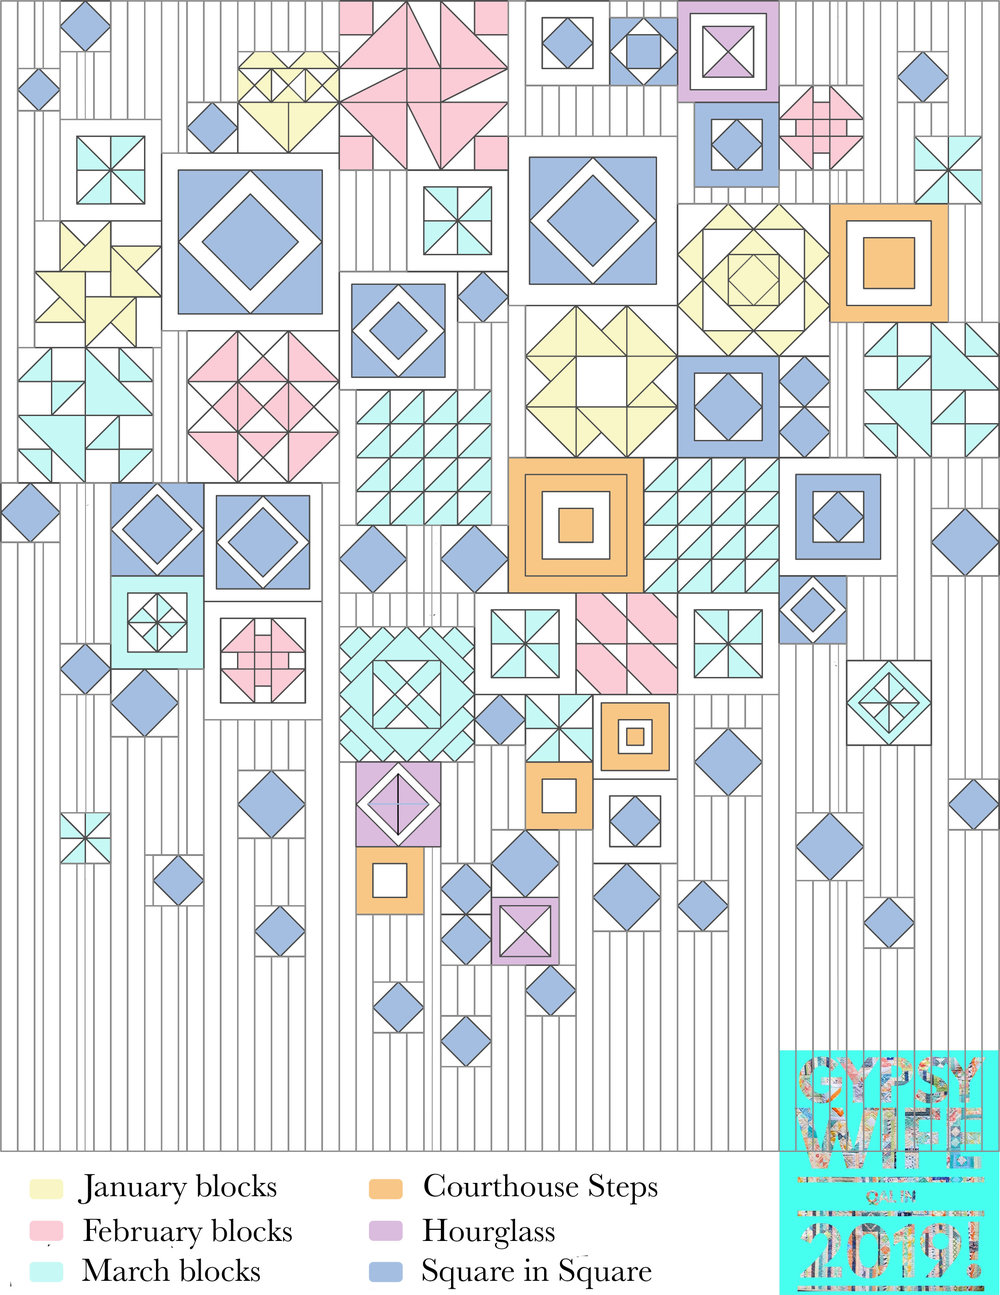 April Gypsy Wife Quilt Map. Stitched in Colorjpg.jpg